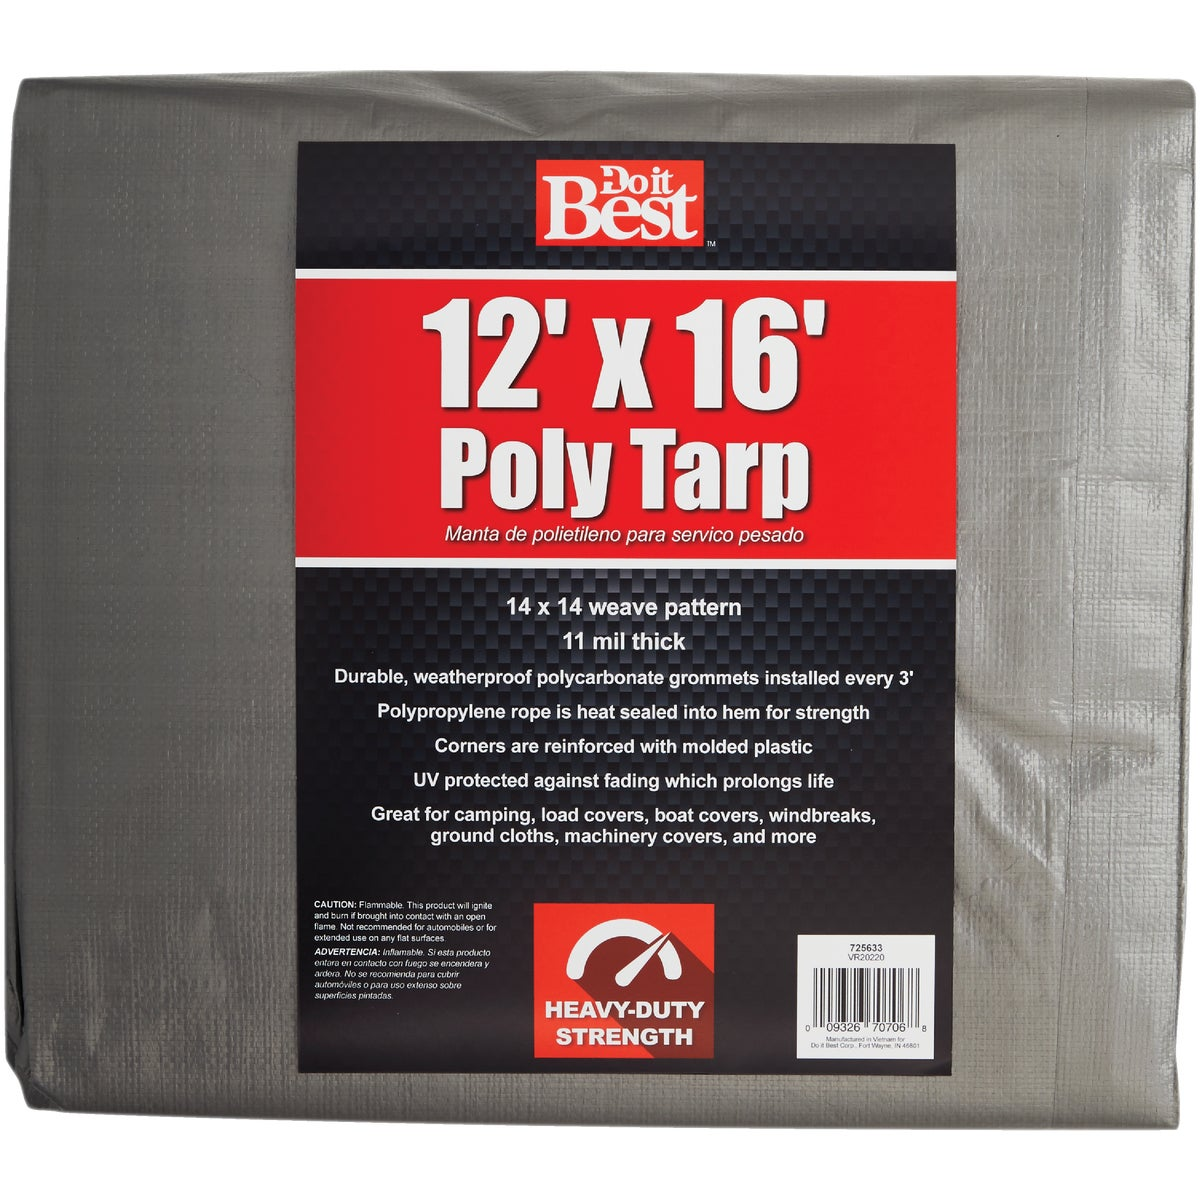 12X16 SLVR H/DUTY TARP - 725633 by Do it Best